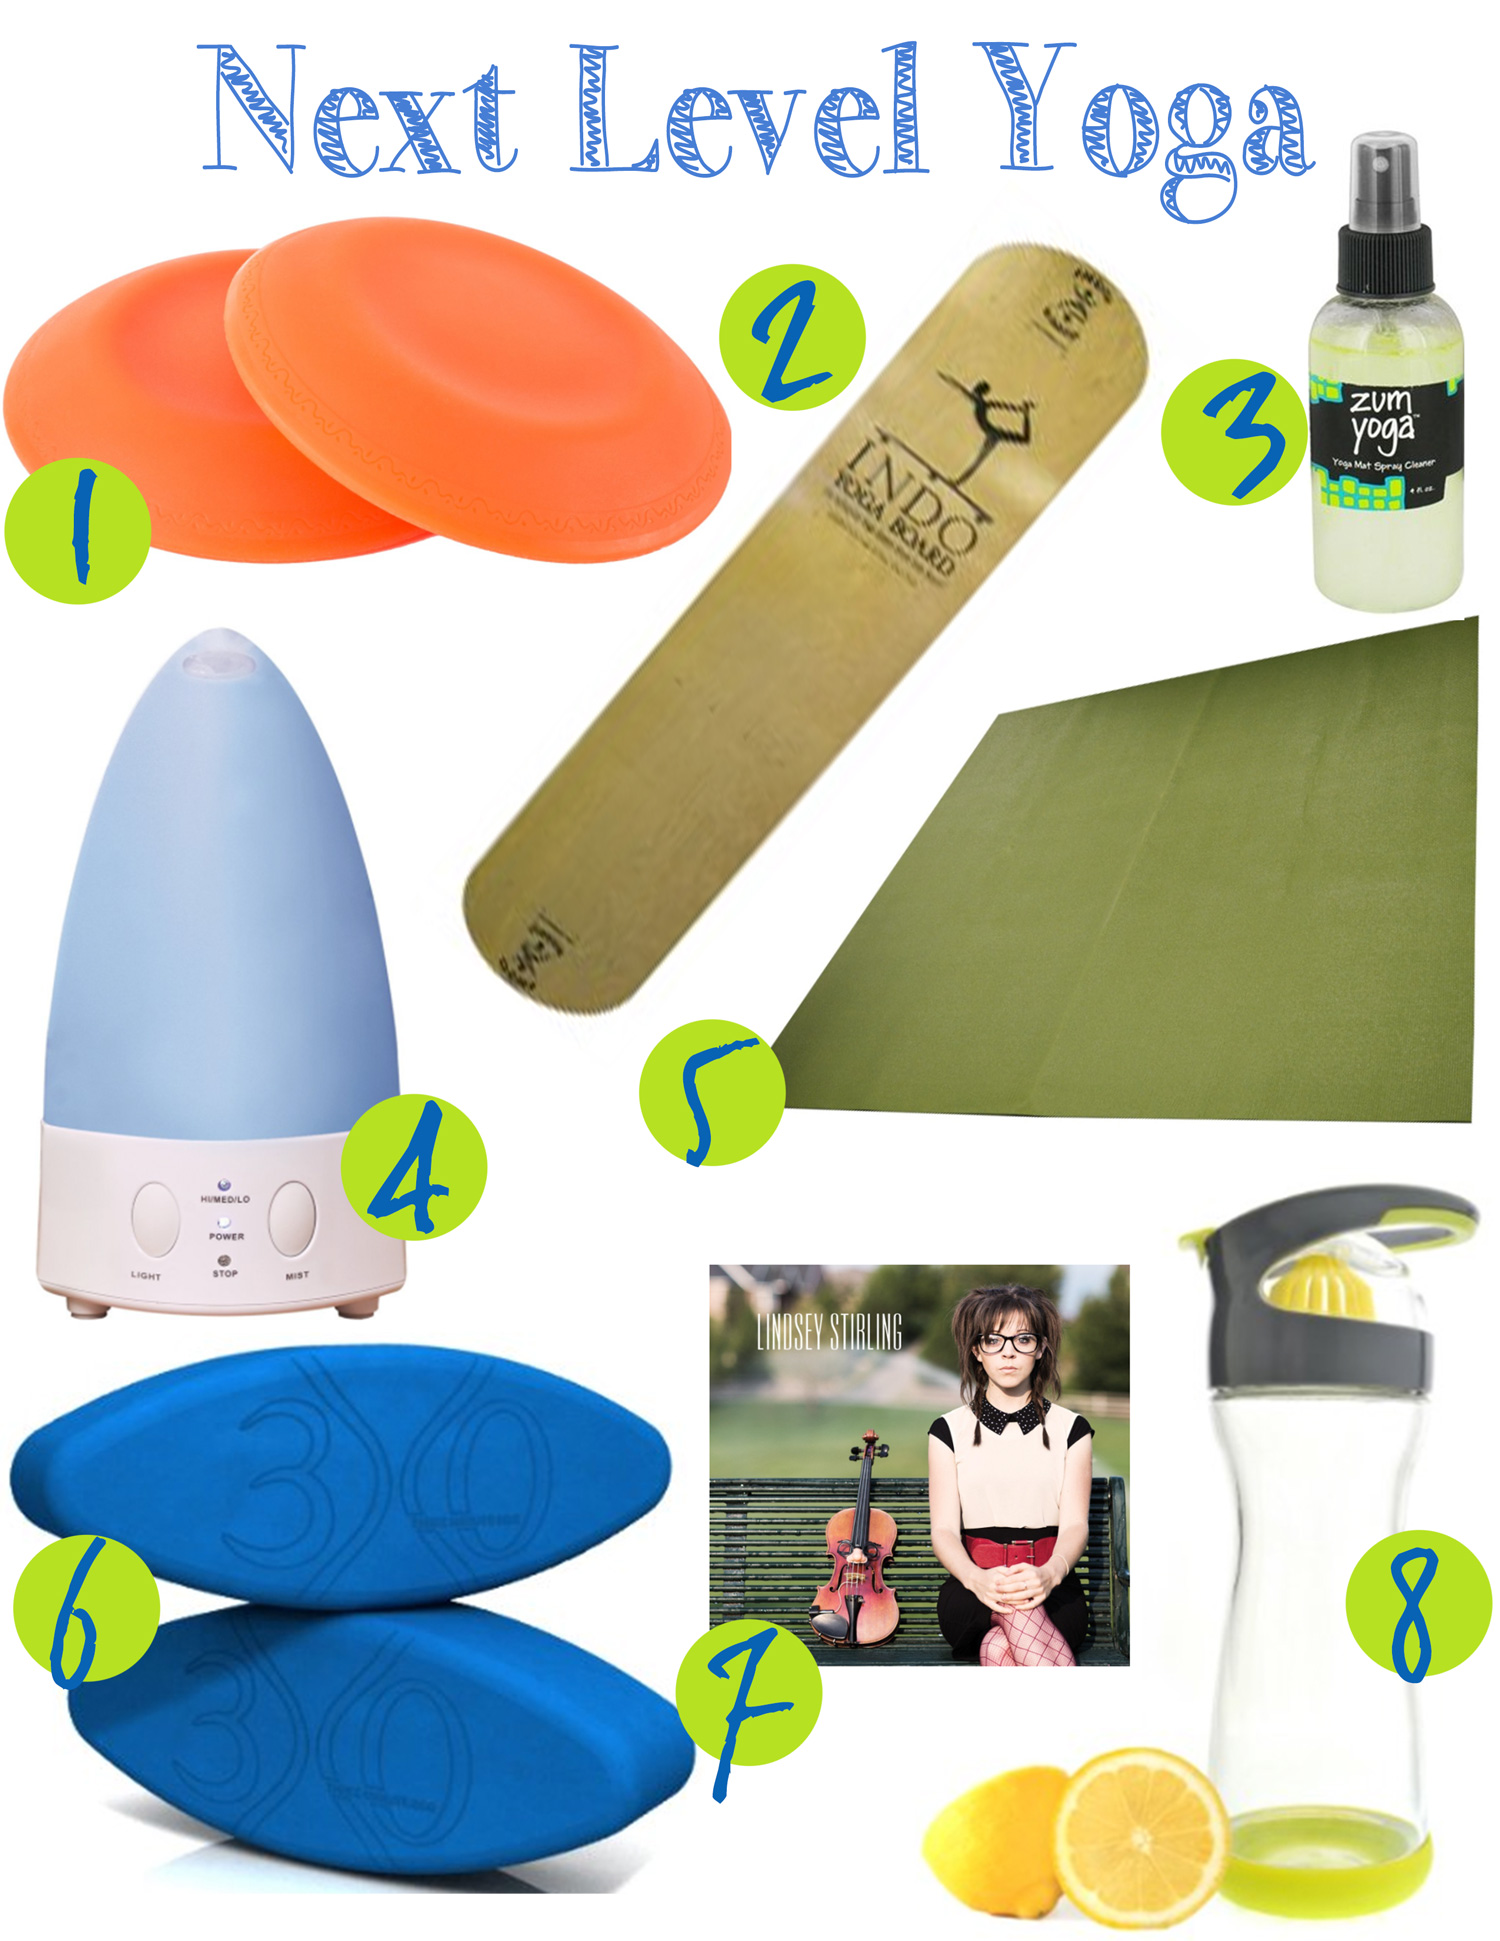 8 Yoga props to take your yoga to the next level. Pin it!